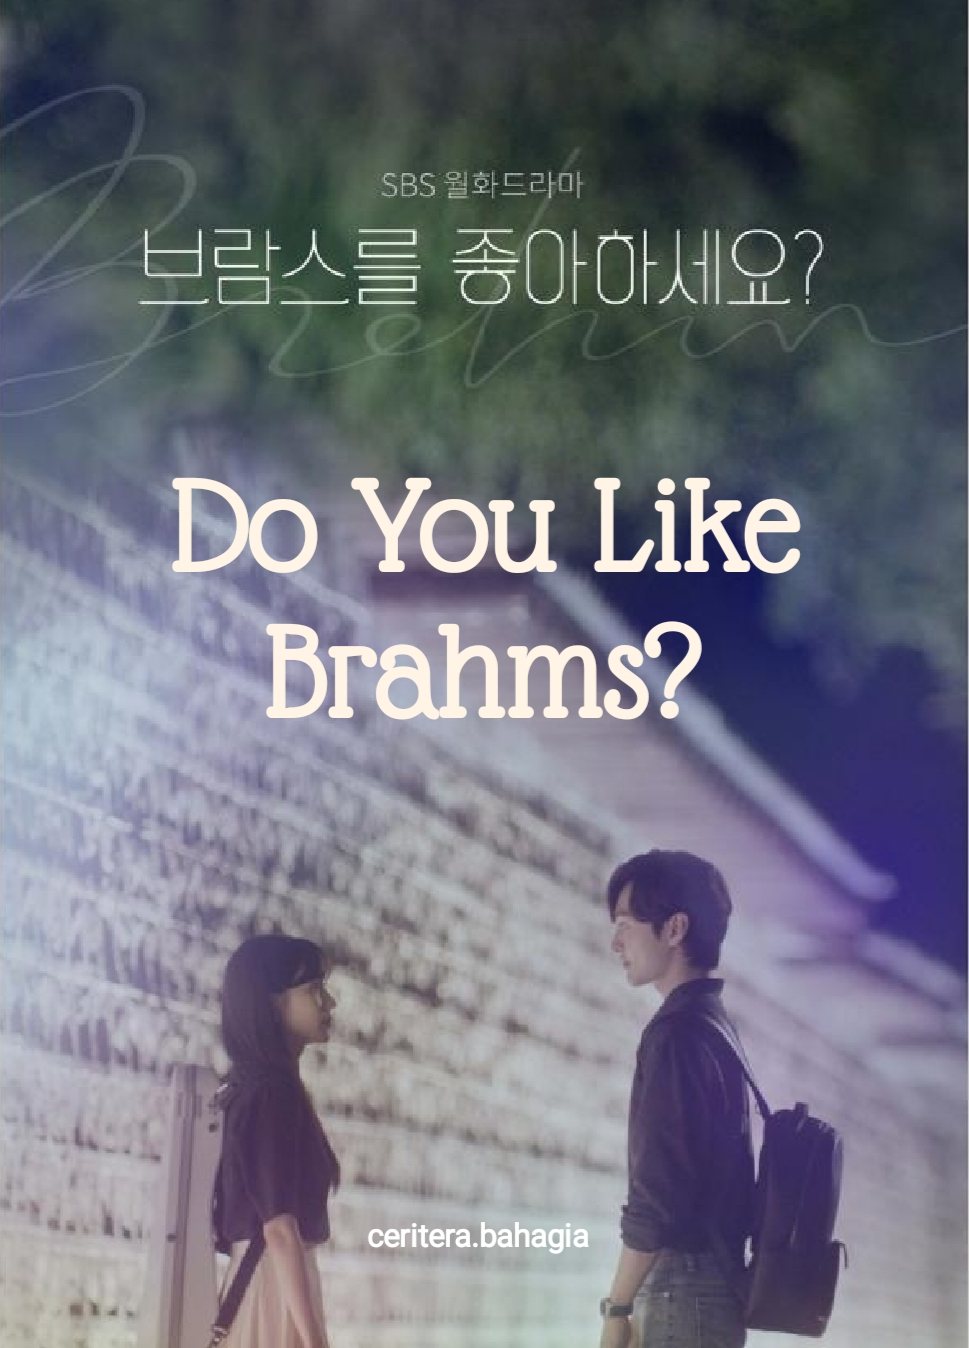 Do You Like Brahms?